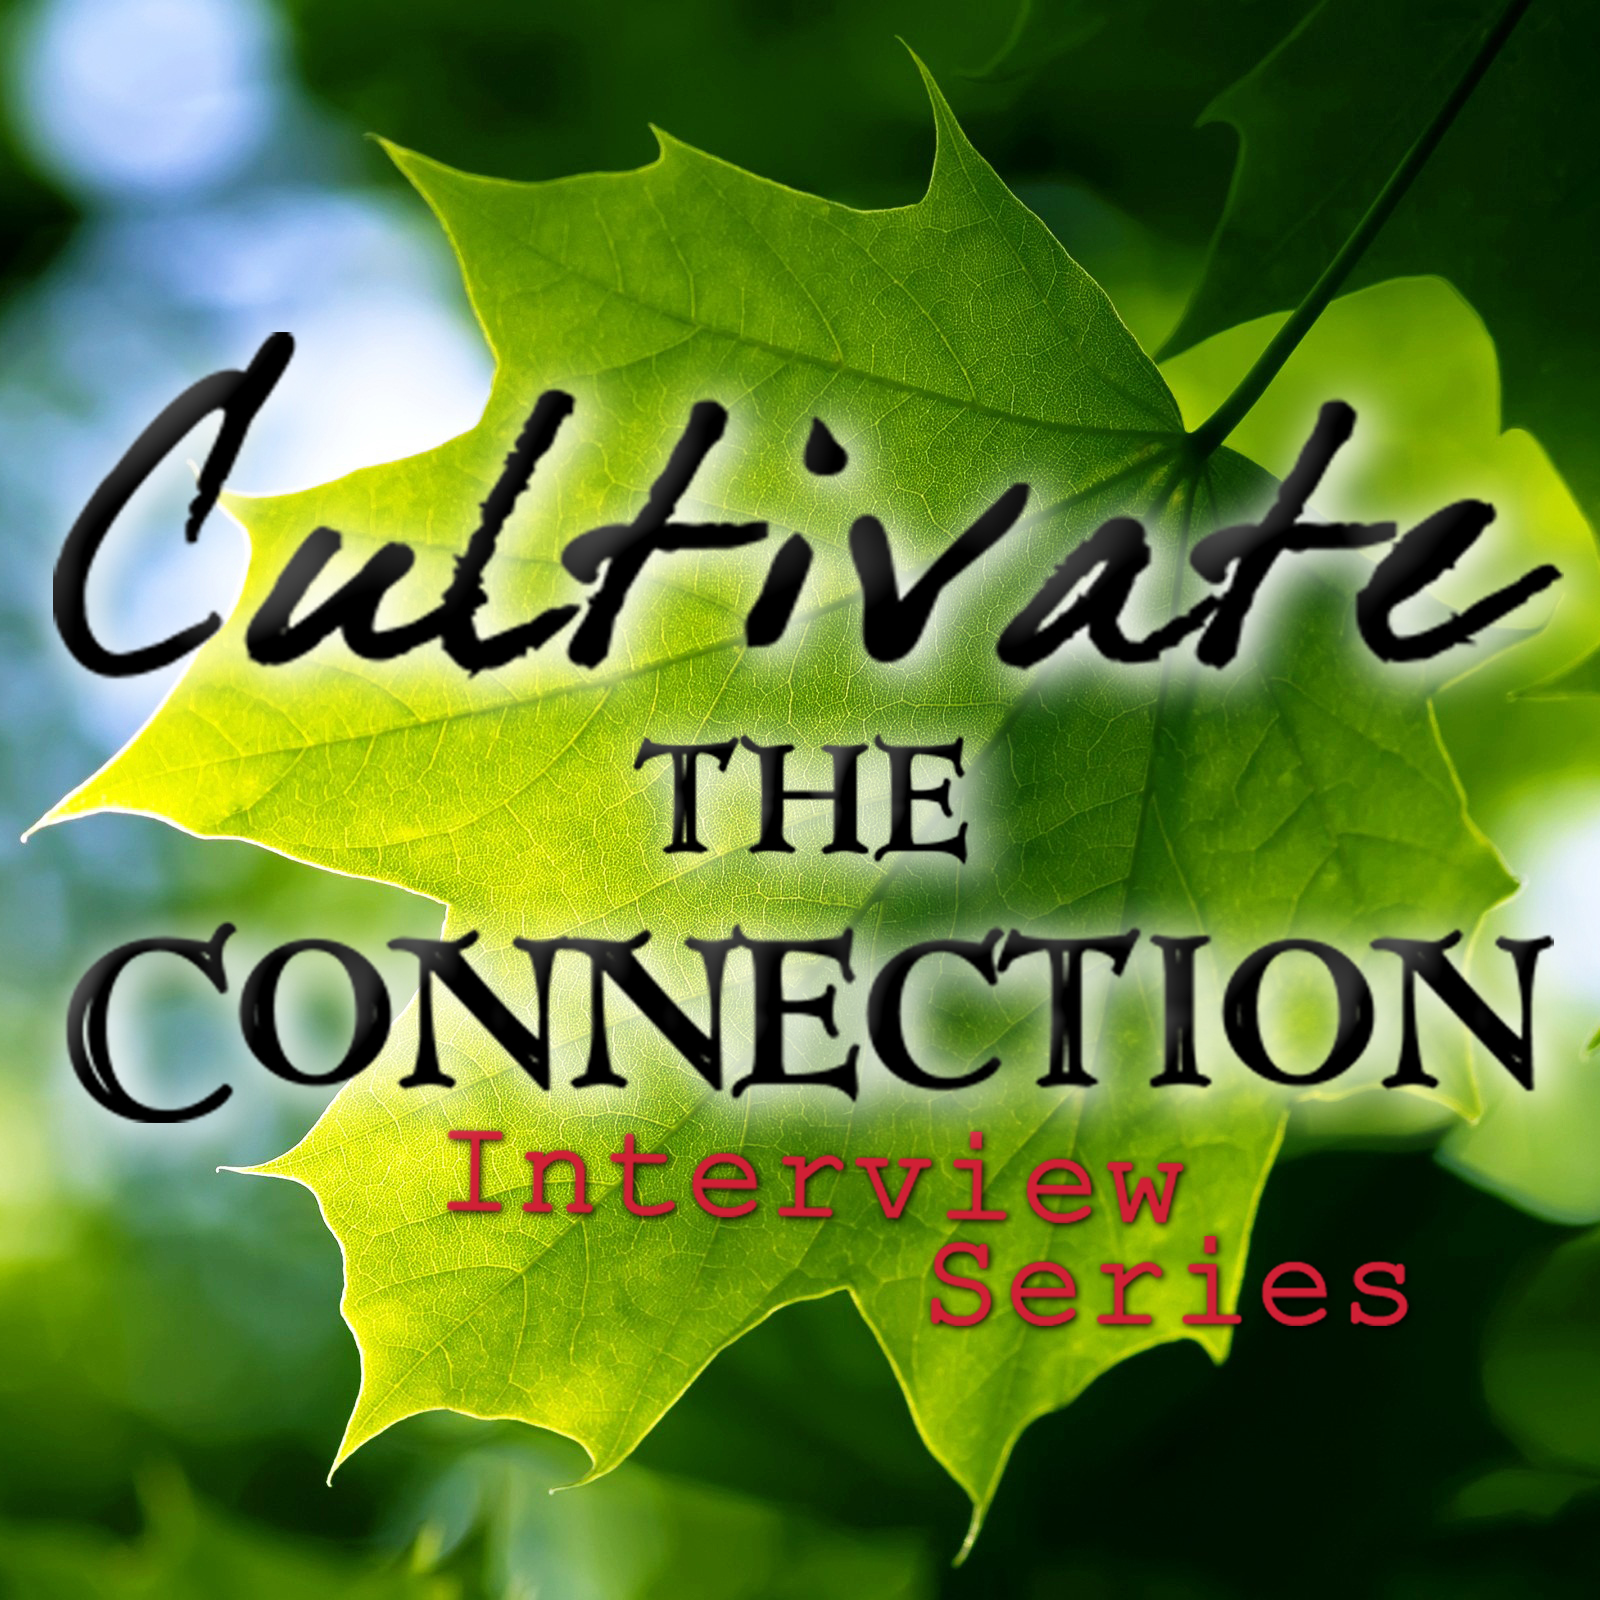 CultivatetheConnectionSquare2